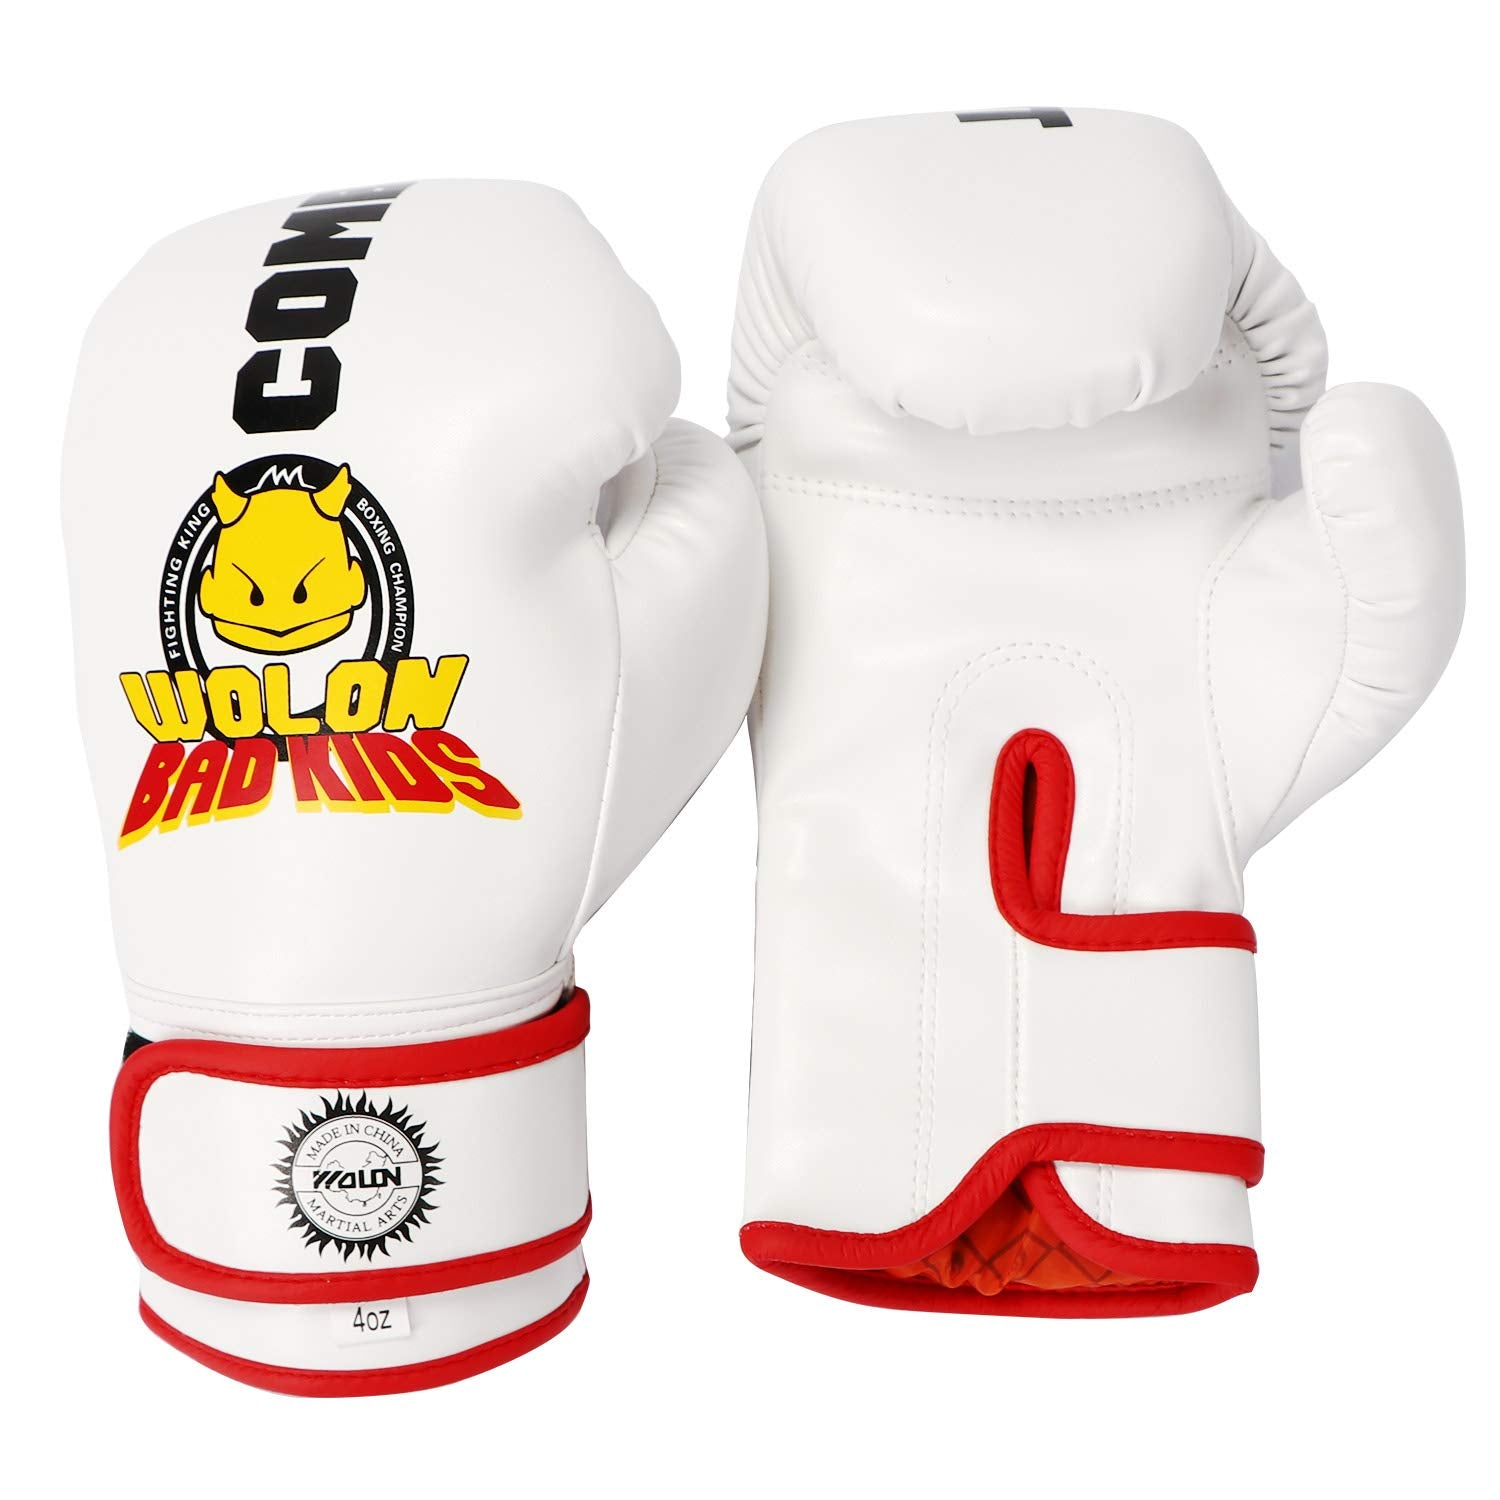 Kids White Bad Kids Boxing Gloves 4OZ - Q&ADoorChimes